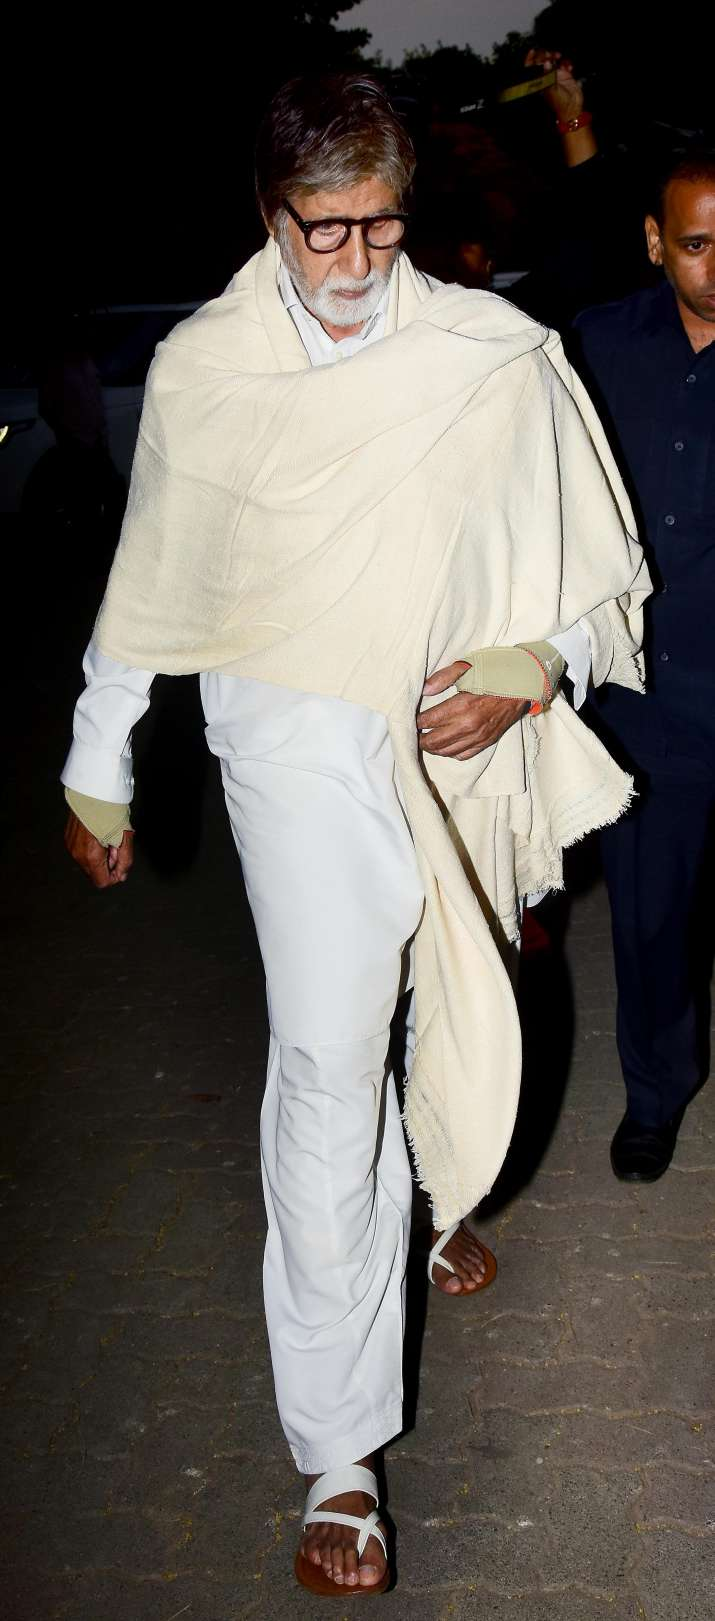 India Tv - Amitabh Bachchan at Veeru Devgan's funeral to offer his respect.